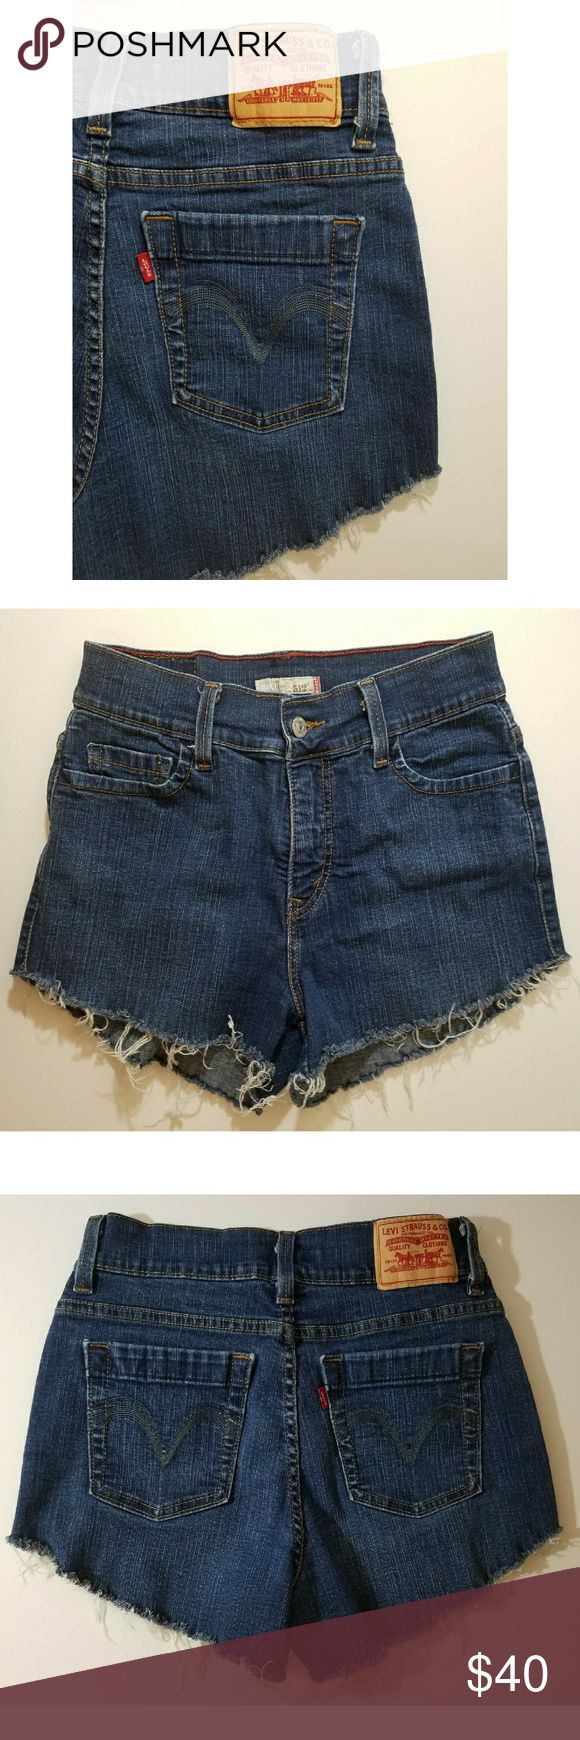 Levi 512 Capri Cut Offs * Levi's 512 cut off shorts, ( used to be perfect slimming capris) * raw stringy hem with front button/zipper closure * worn a handful of times, in great condition Levi's Shorts